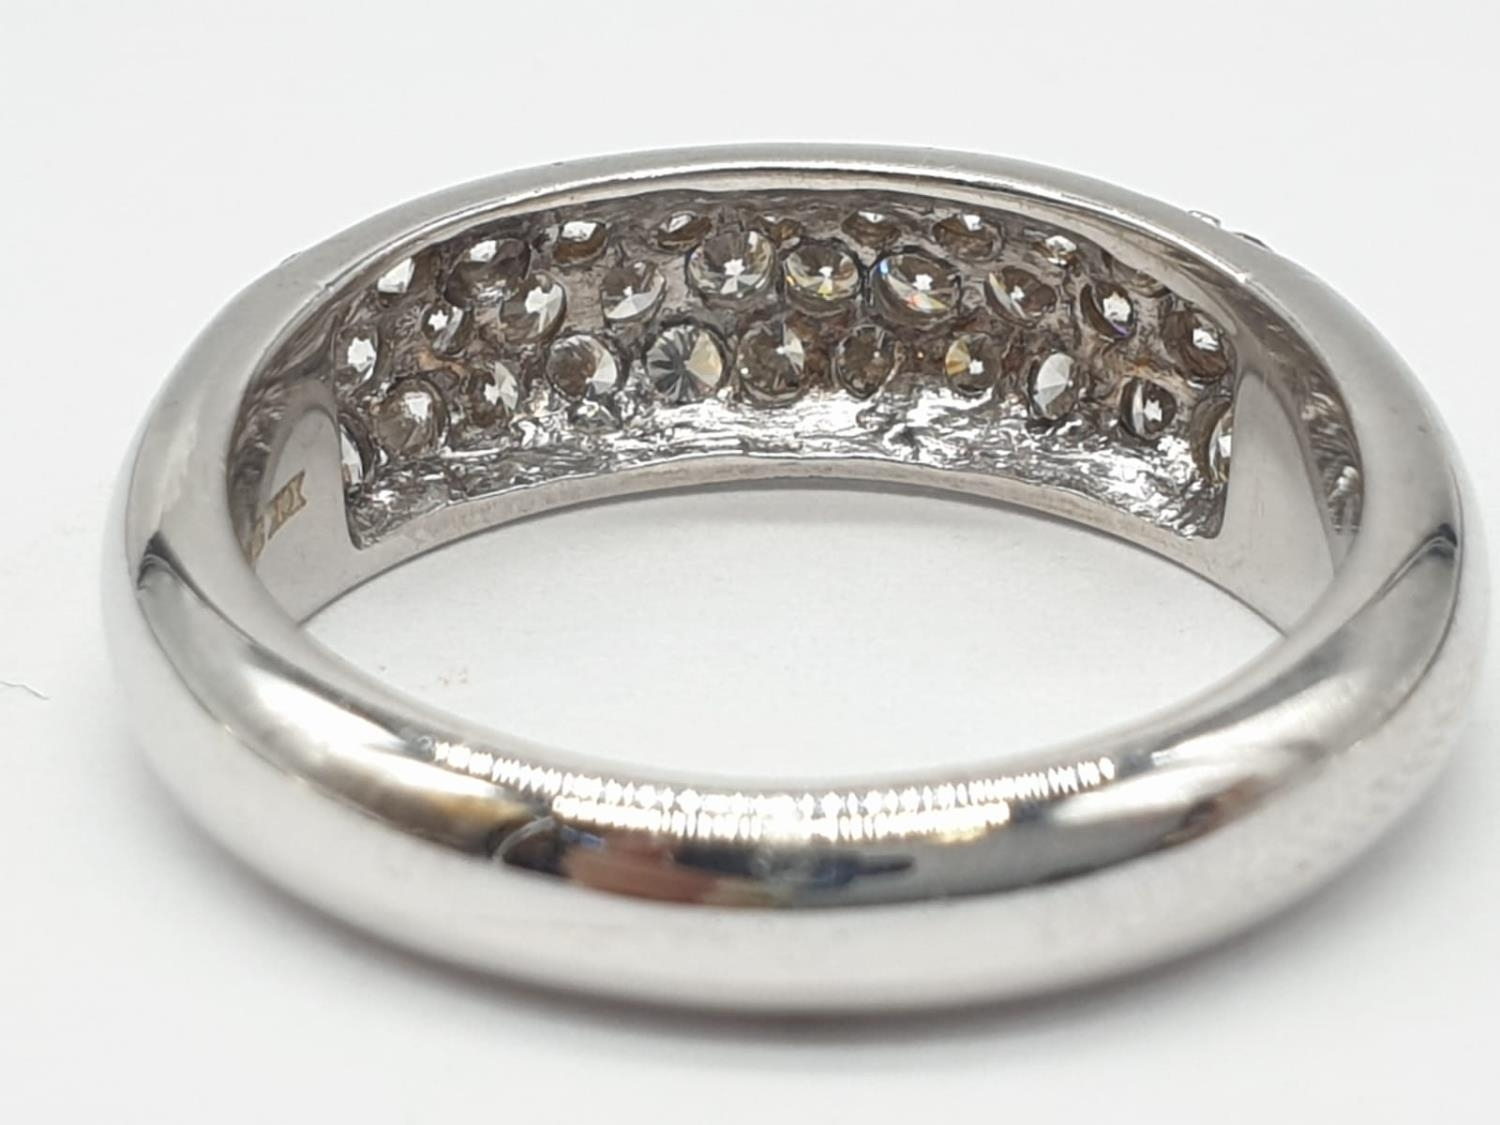 A diamond encrusted 18ct white gold ring. 6.4g and size N. - Image 4 of 7